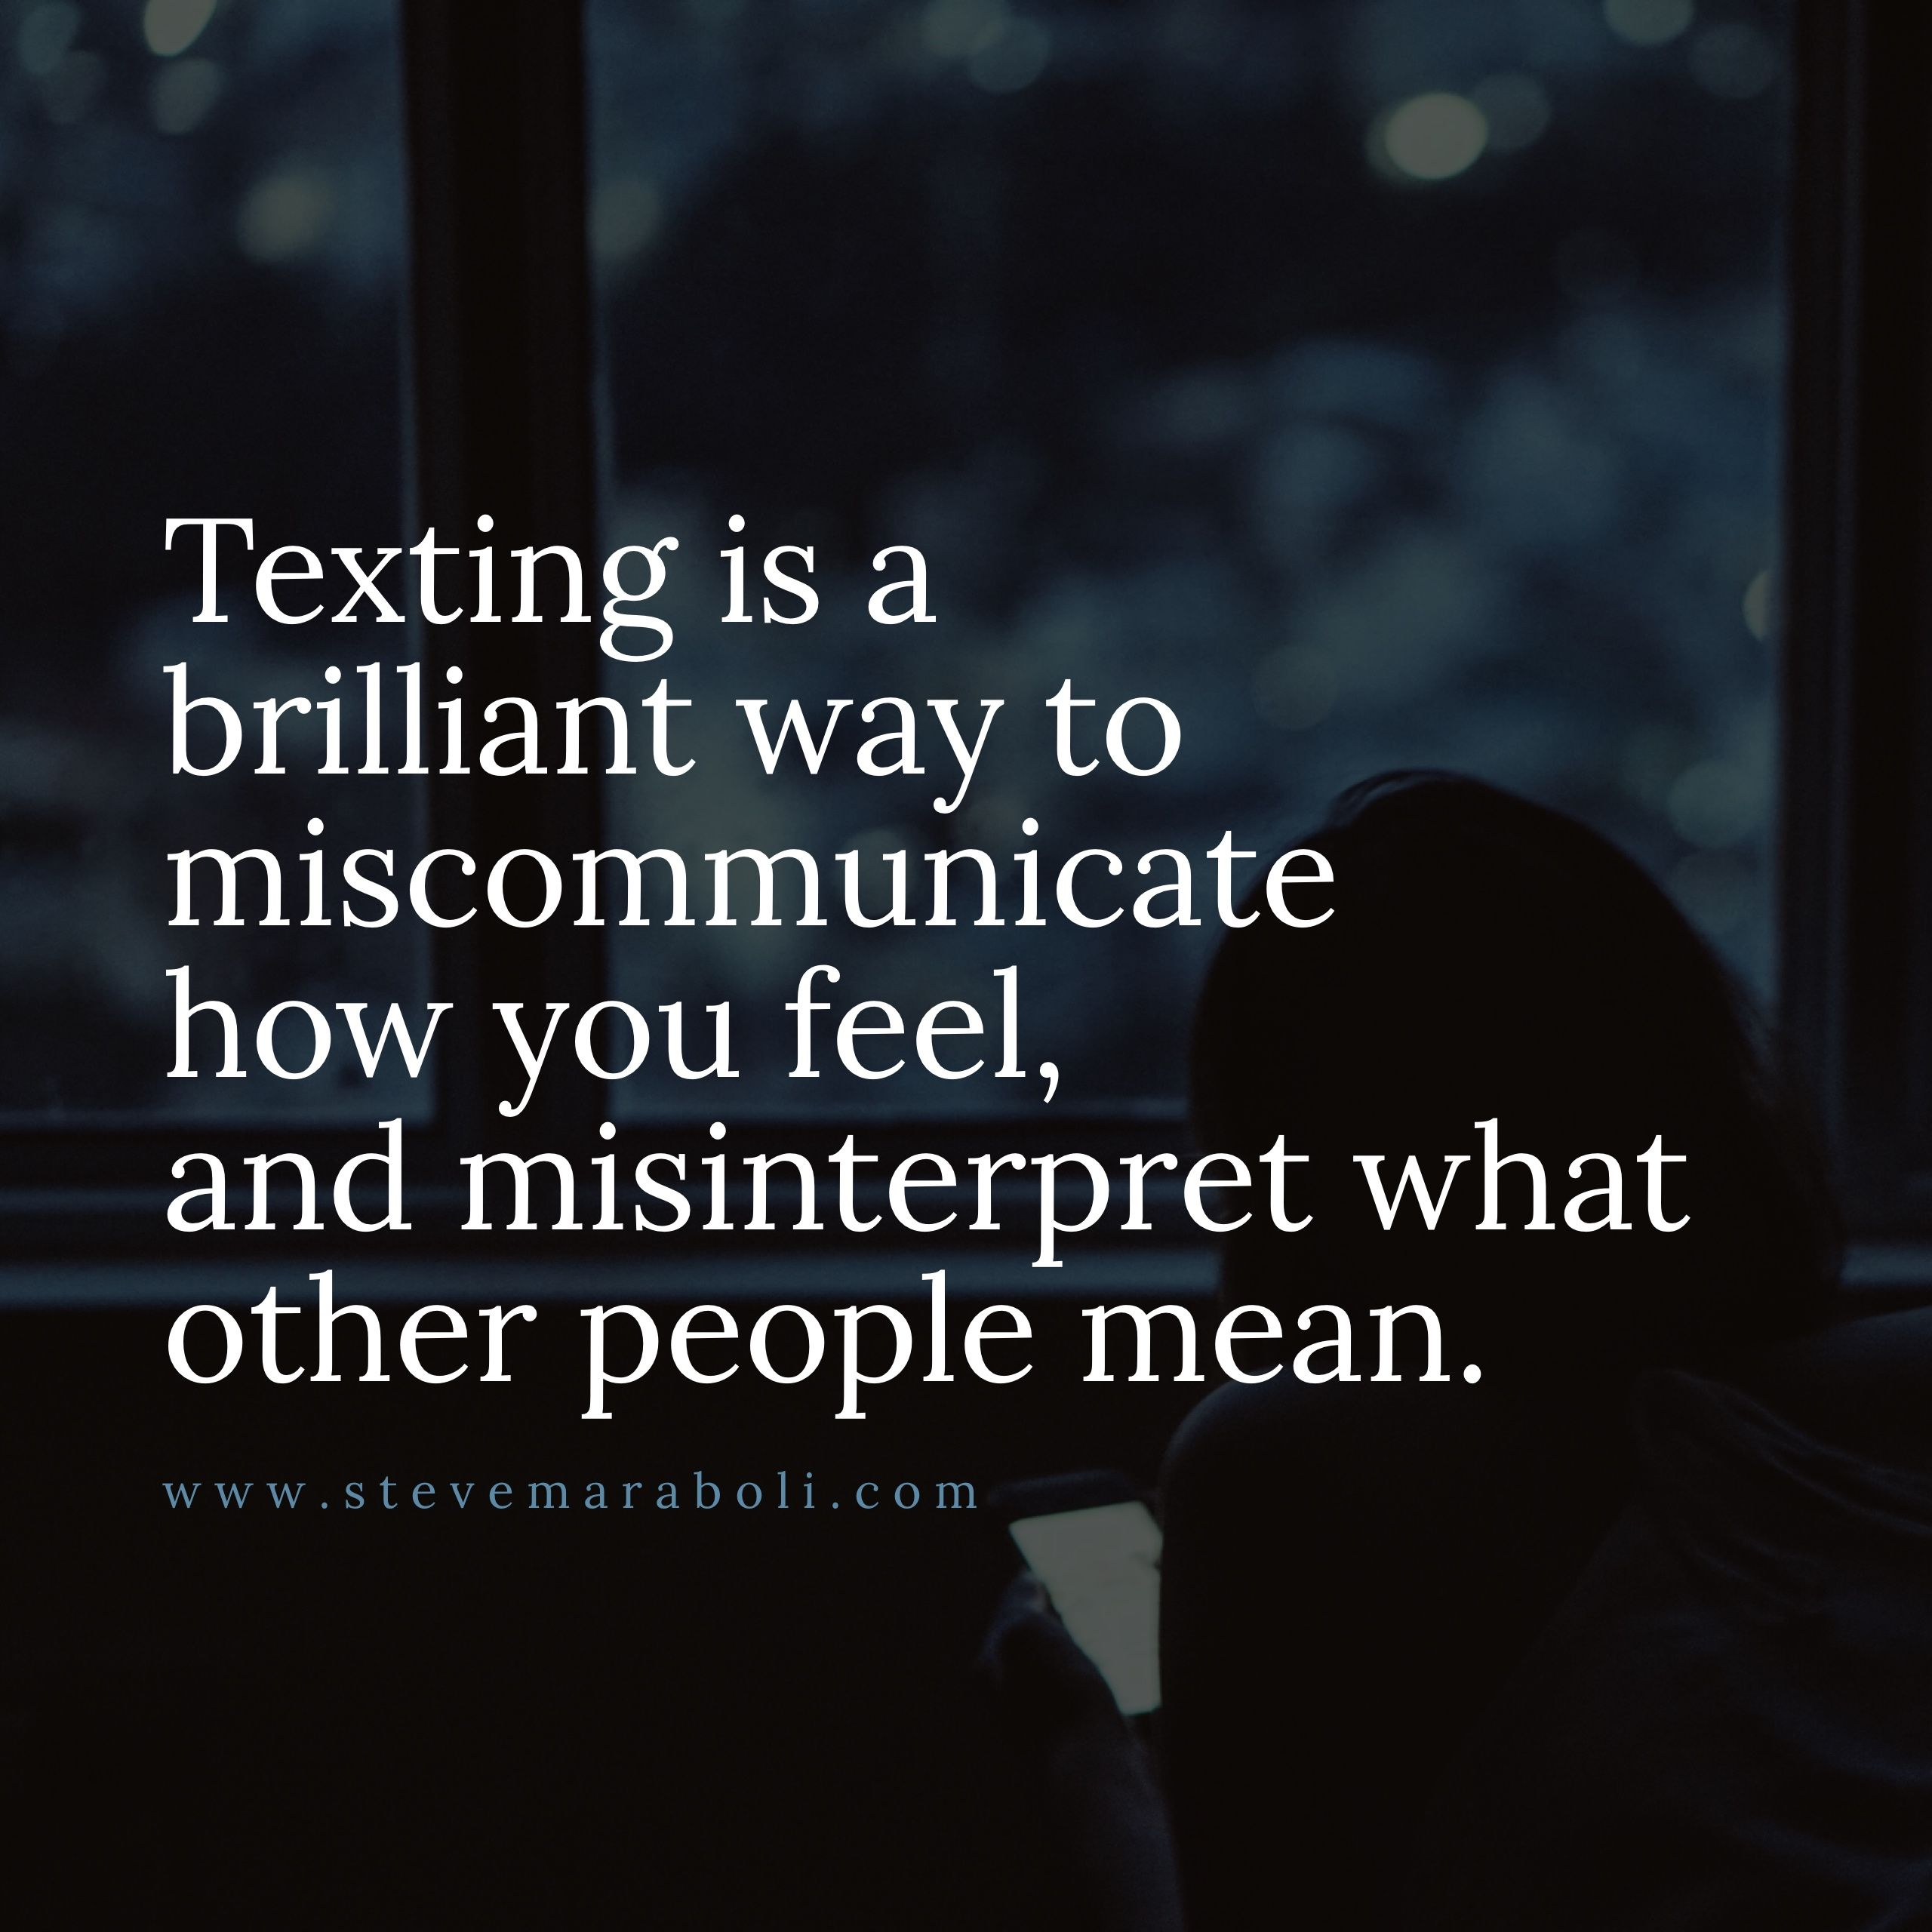 Quotes About Losing Friends: Texting Is A Brilliant Way To Miscommunicate How You Feel